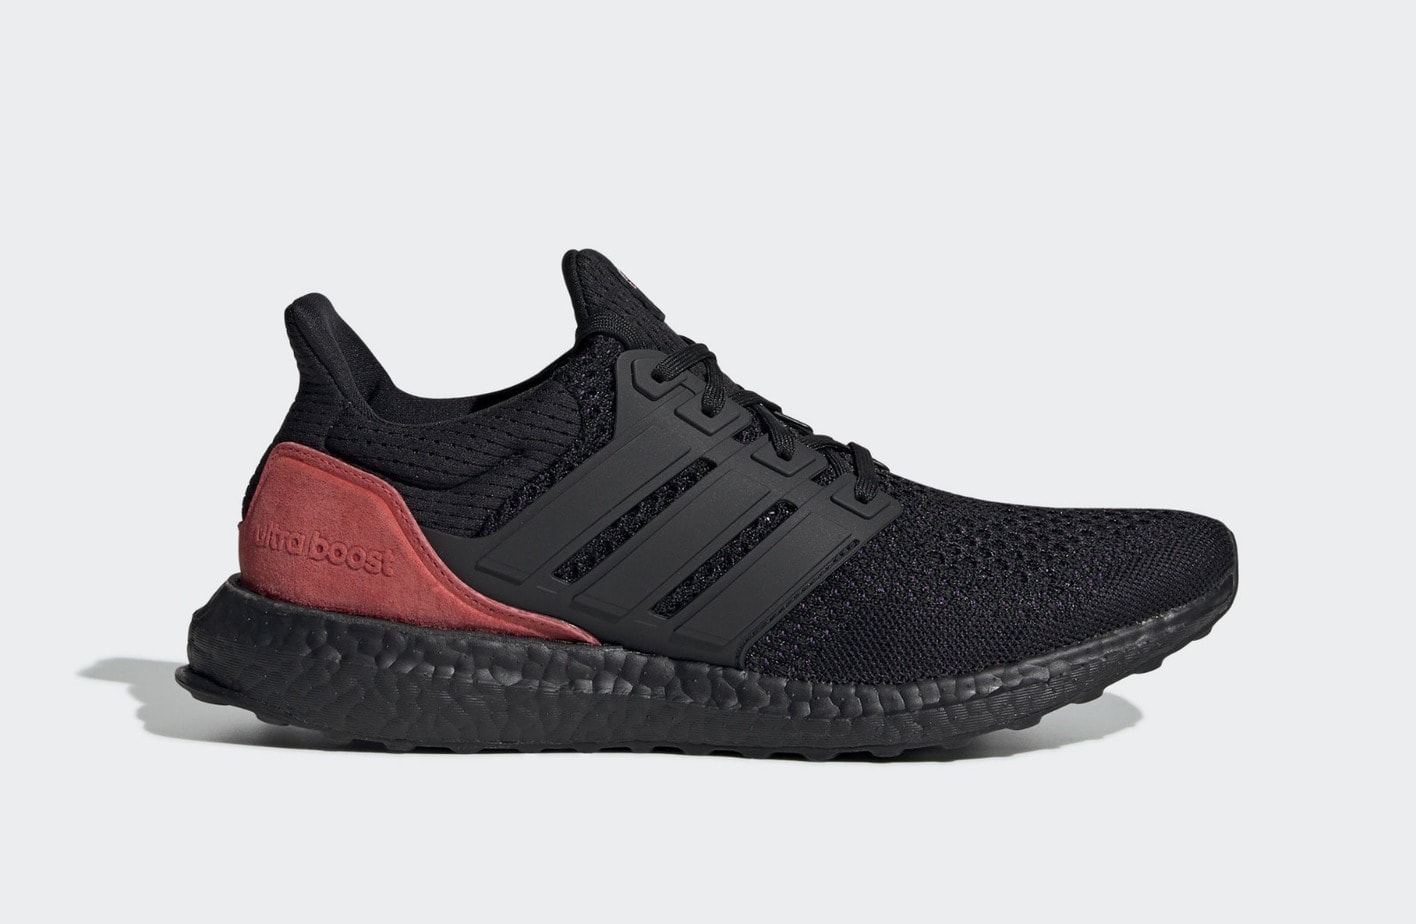 69a16e03e adidas has an interesting new look for the Ultra Boost. Early this week